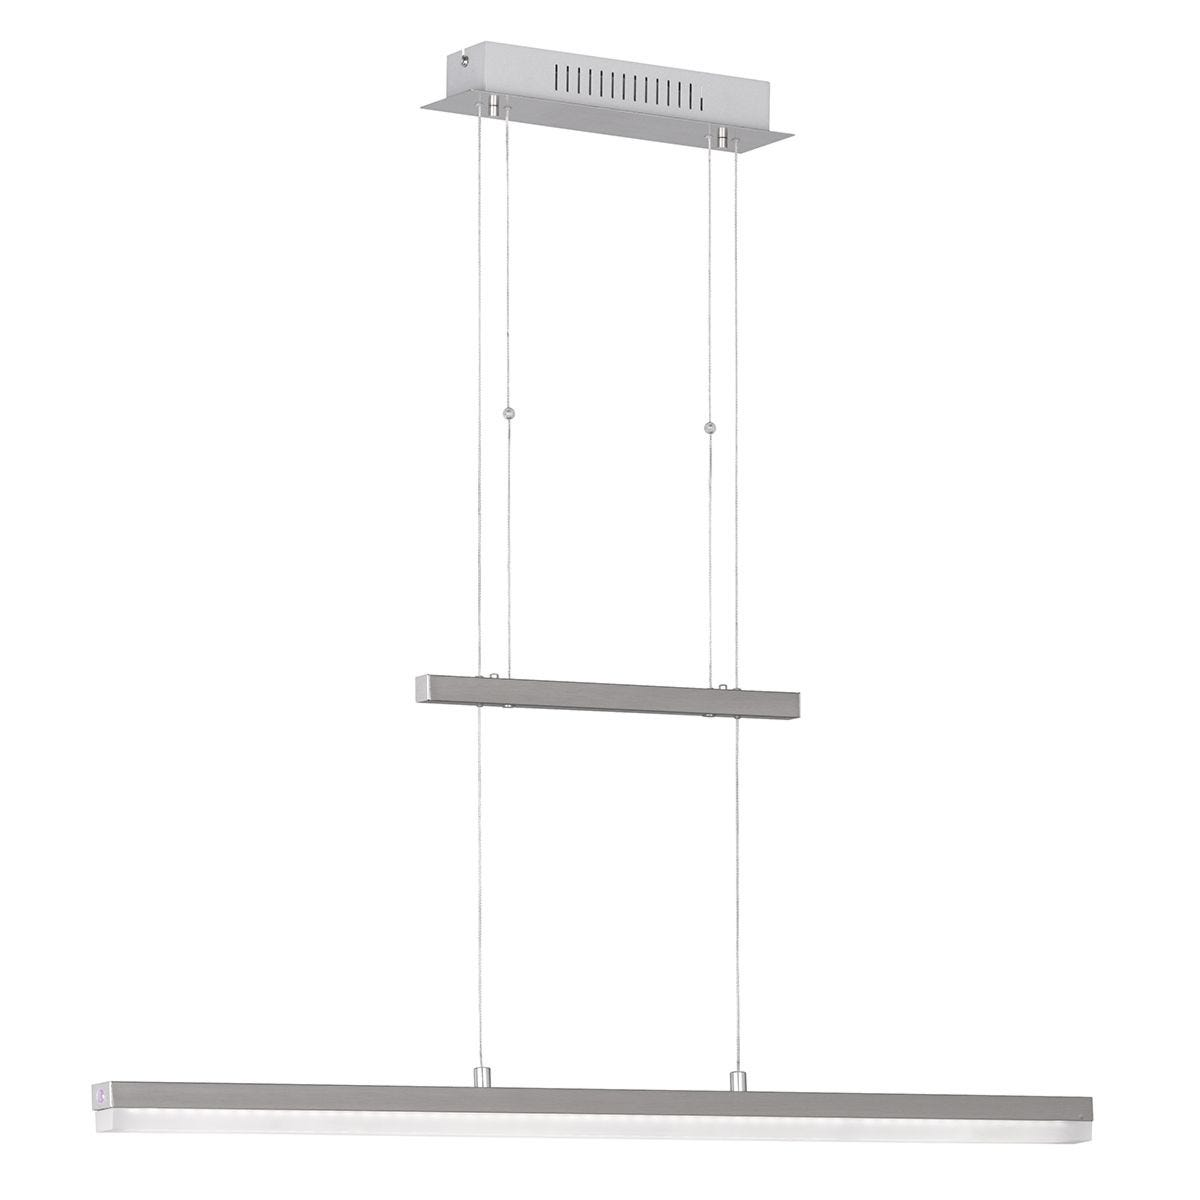 Action Gwen Pendant Bar/Spot Light - Nickel Matt Finished with LED Bulb